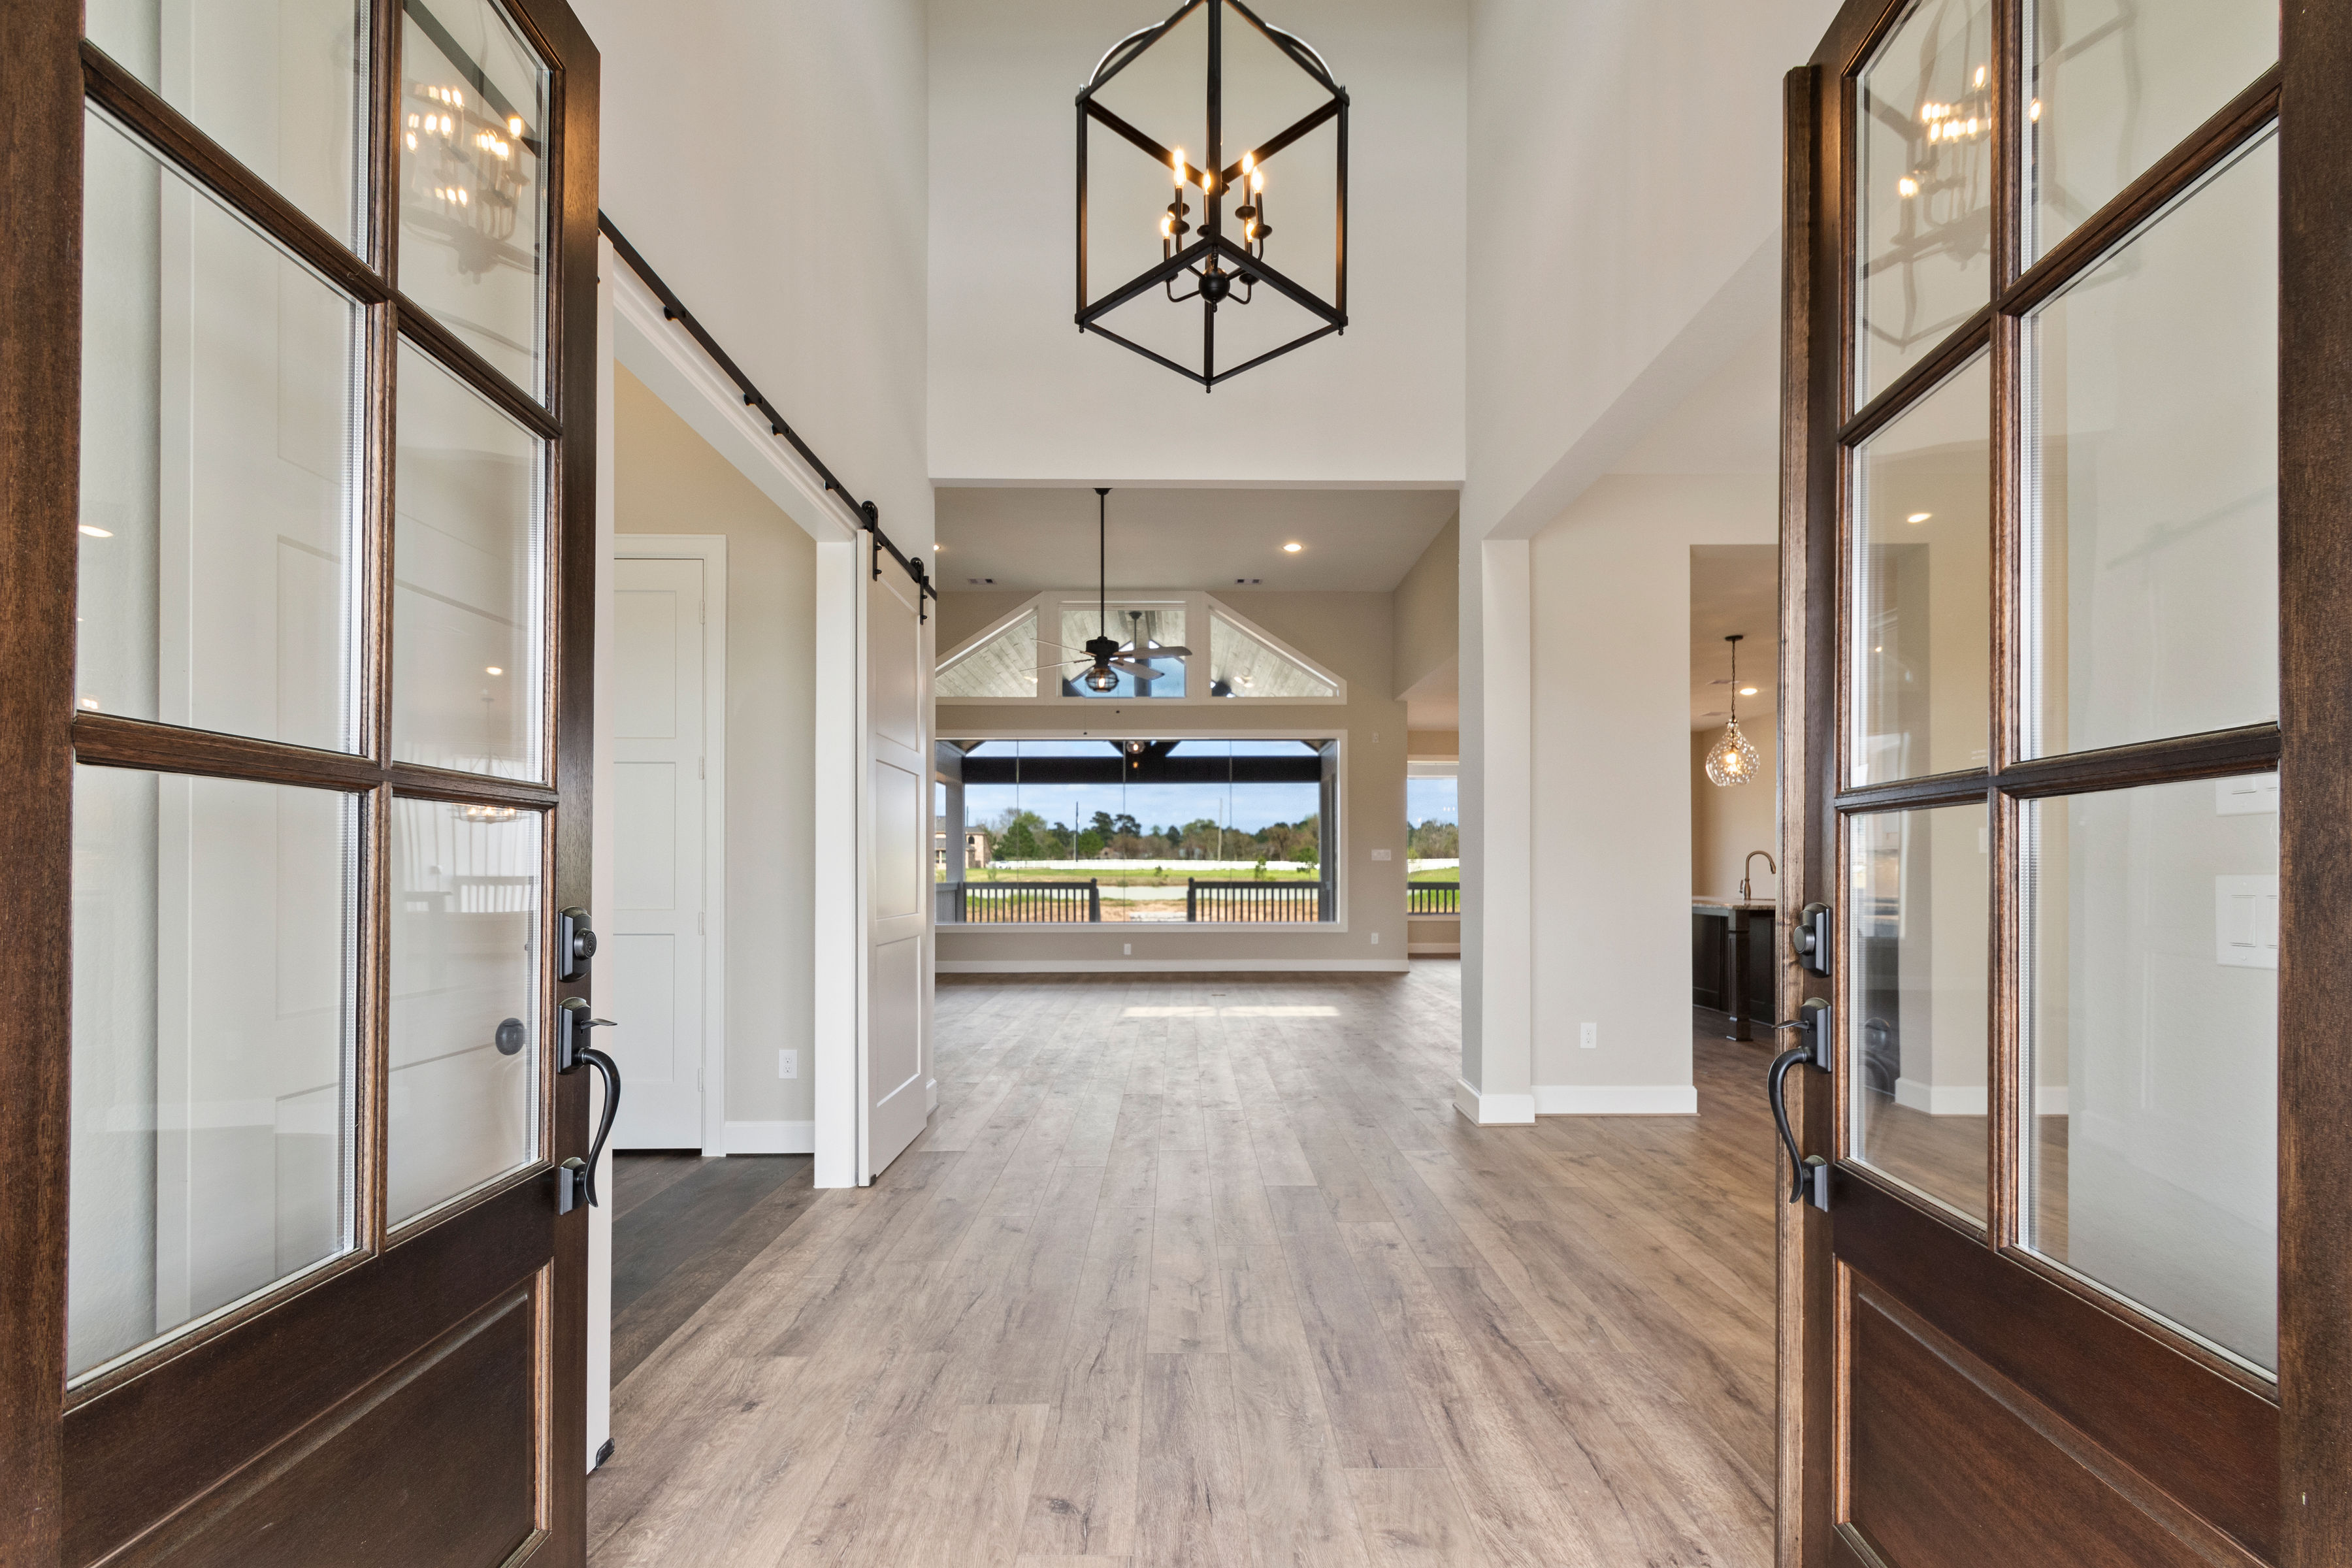 Thousand Oaks Modern Farmhouse - Selections & Design